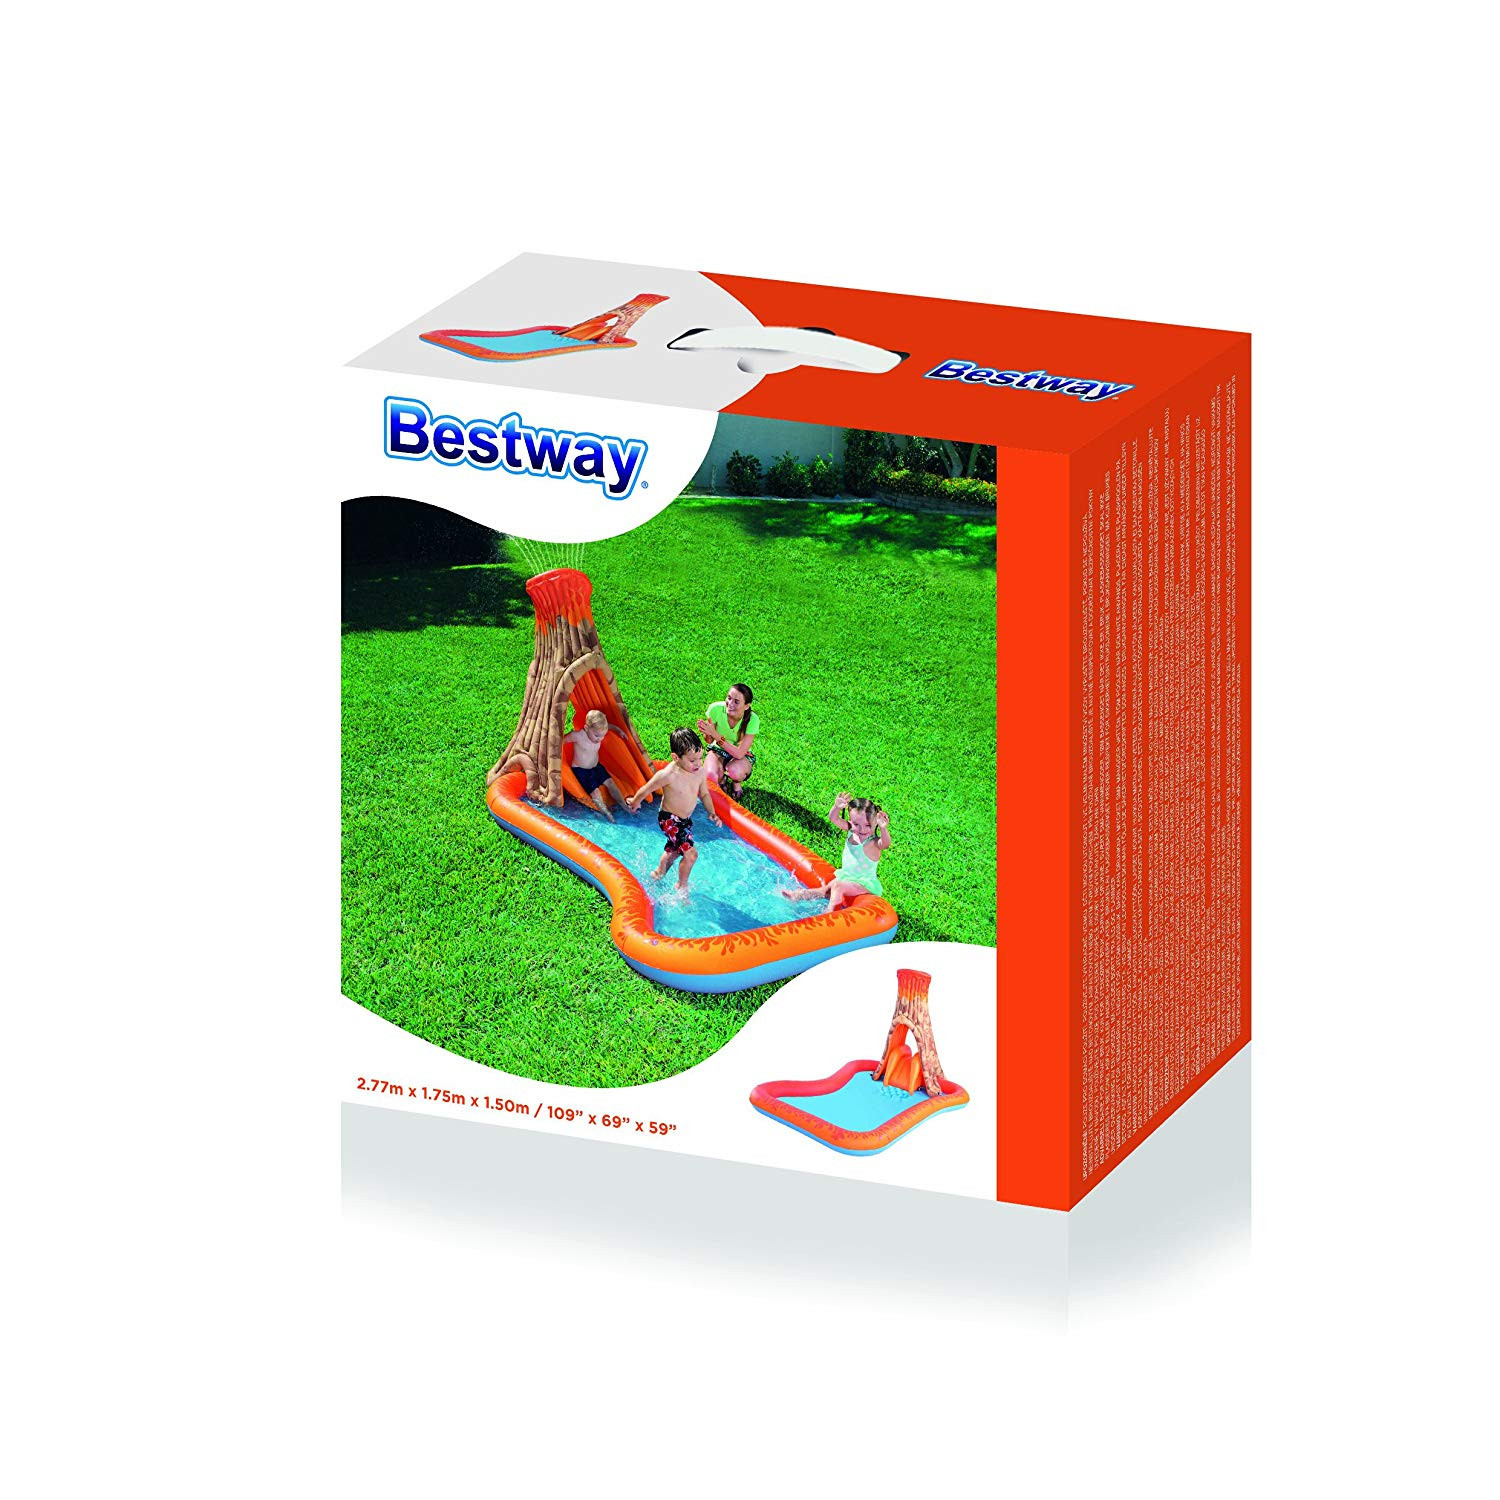 Bestway Inflatable Pool Child Island Volcano Splash 277 Cm X 175 Cm X 150 Cm-53063-